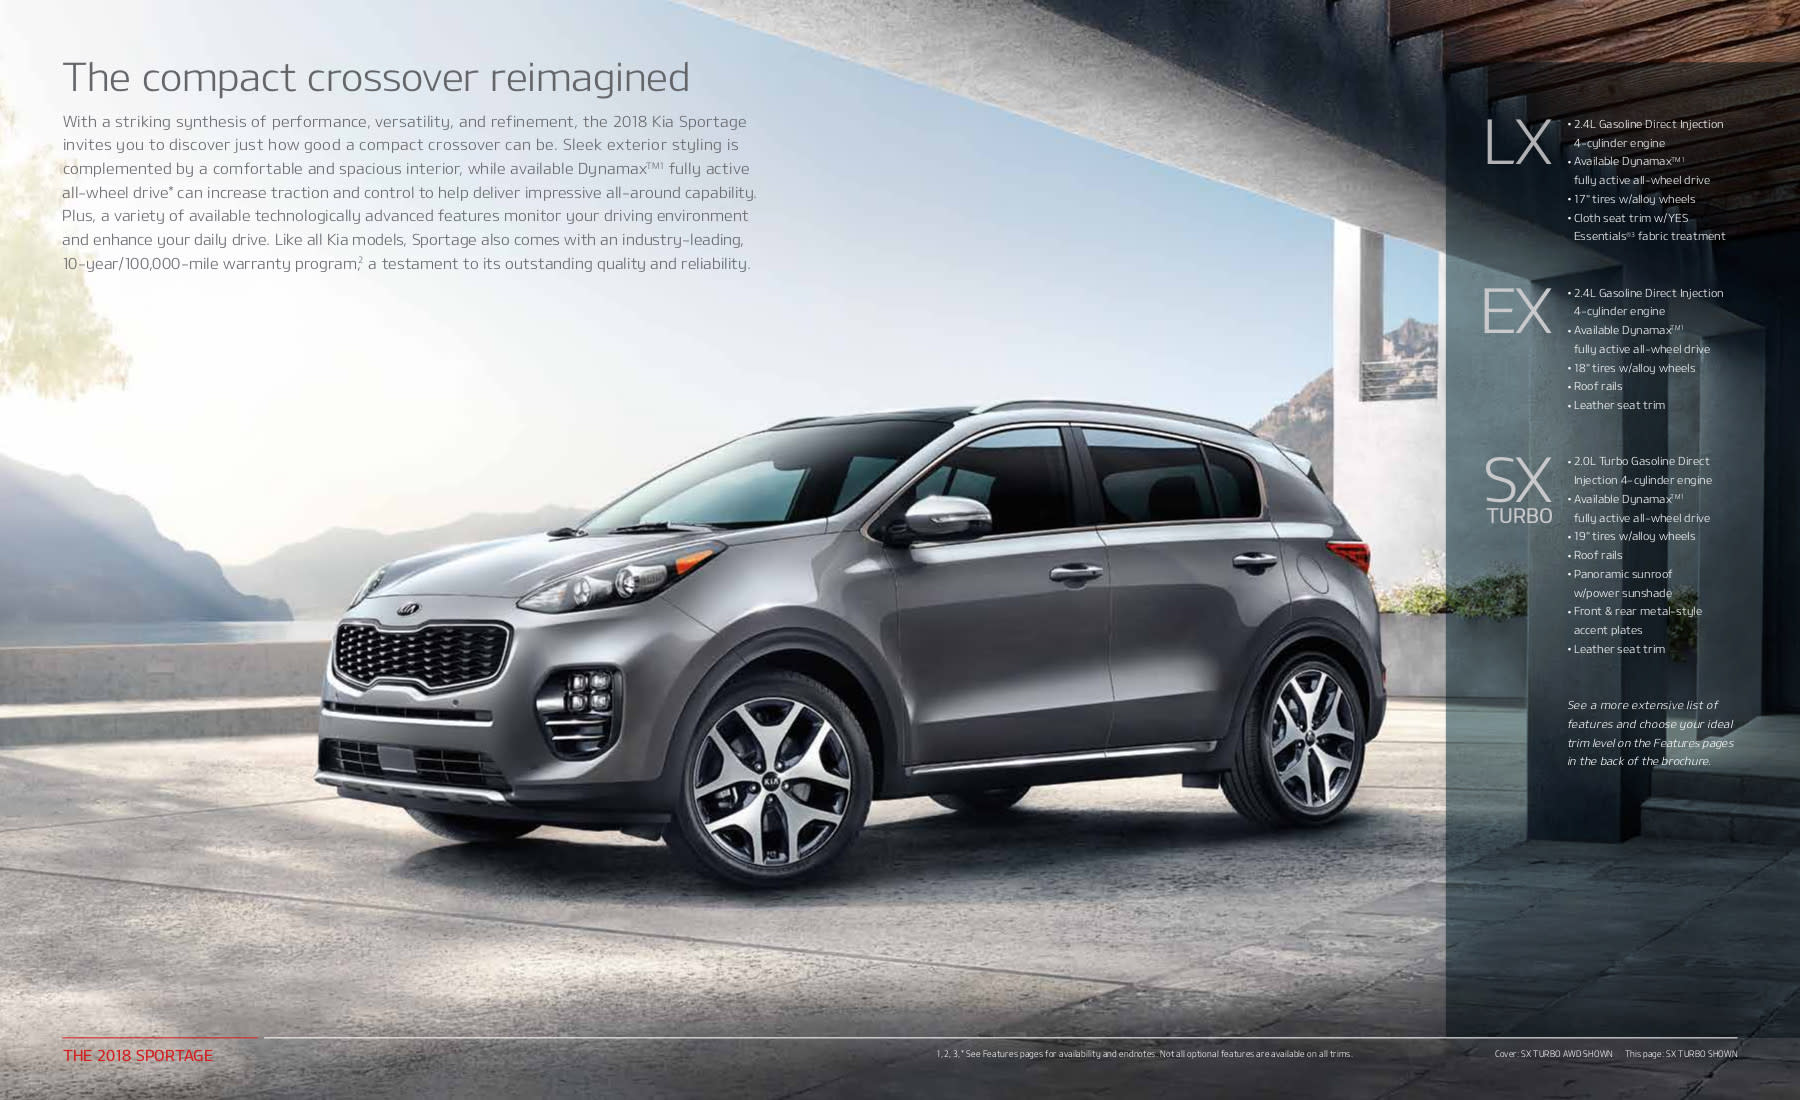 2017 Optima Dealer In San Antonio Tx >> Kia Sportage | New Braunfels | Sales, Service & Parts